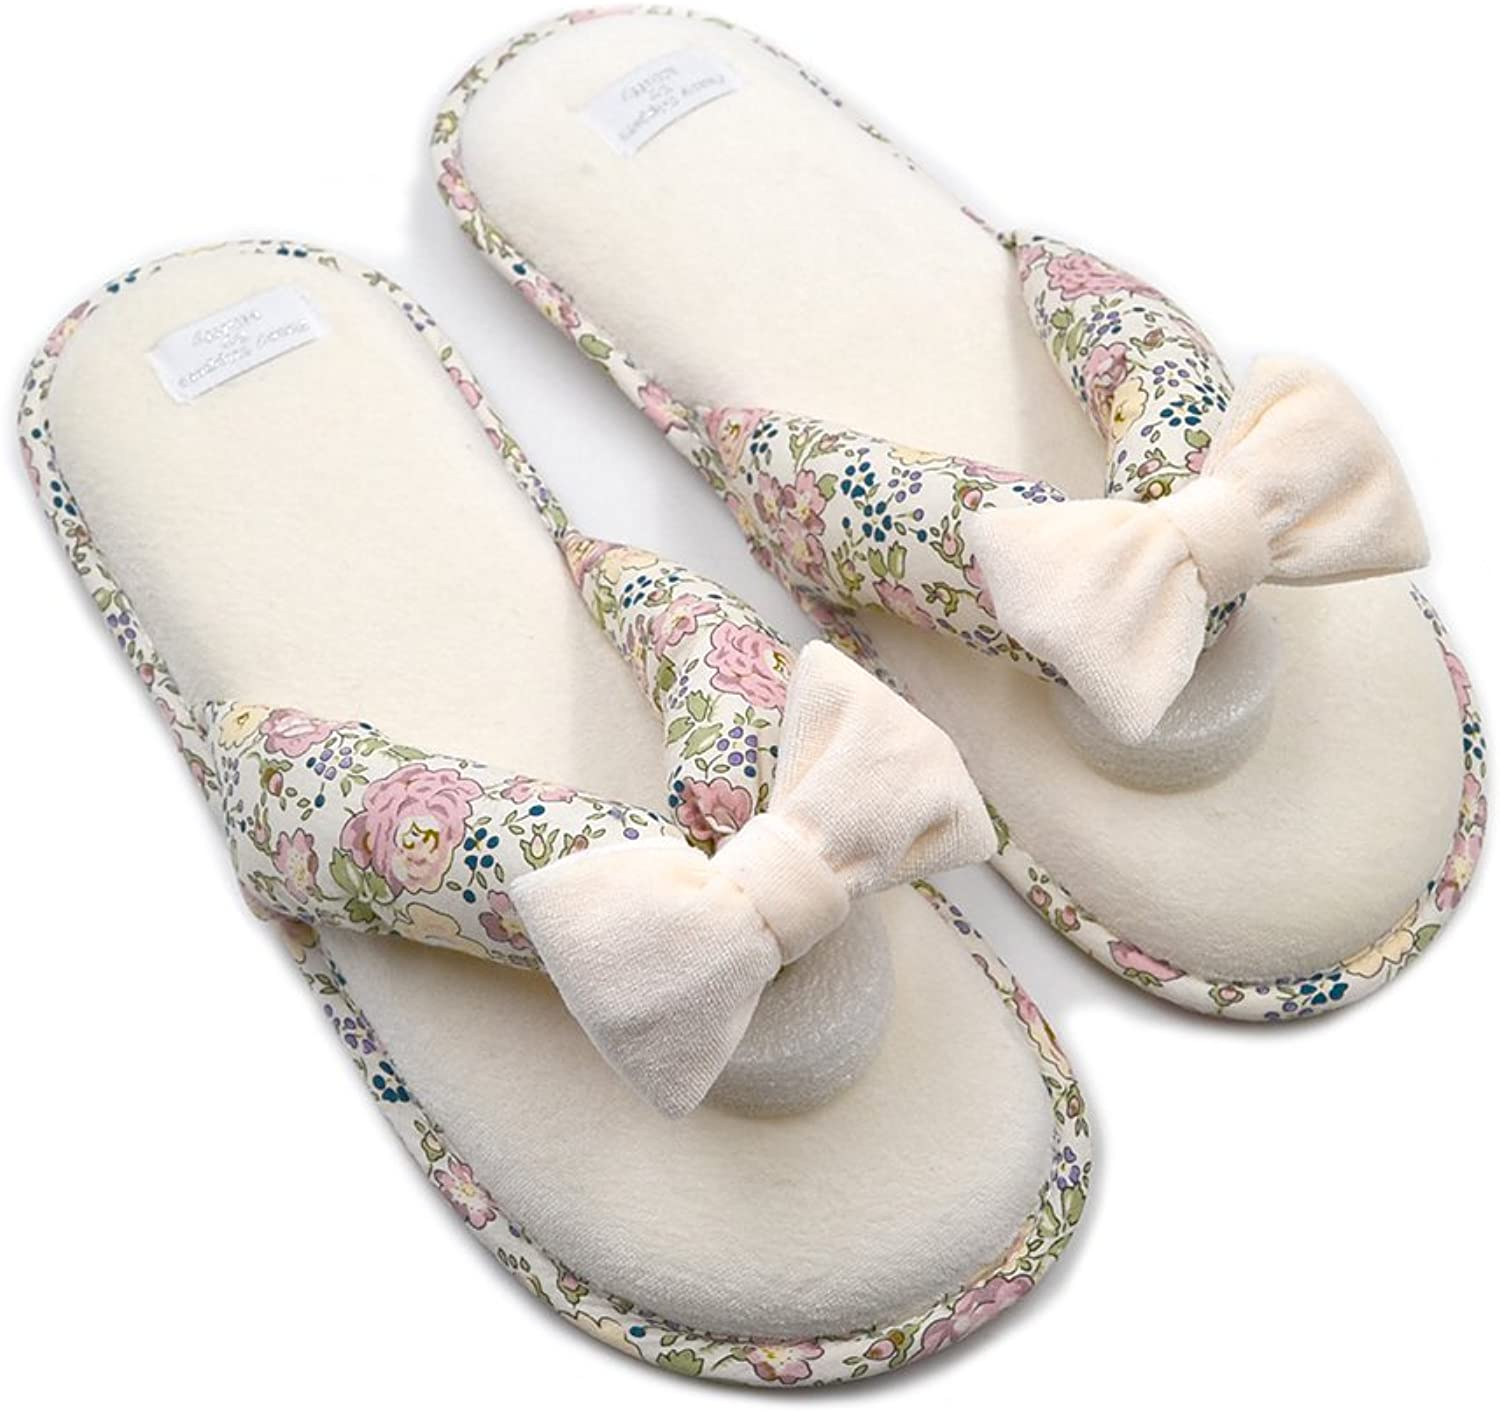 Millffy Memory Foam Cushioning Summer SPA Thong Slipper Japanese Floral Slippers